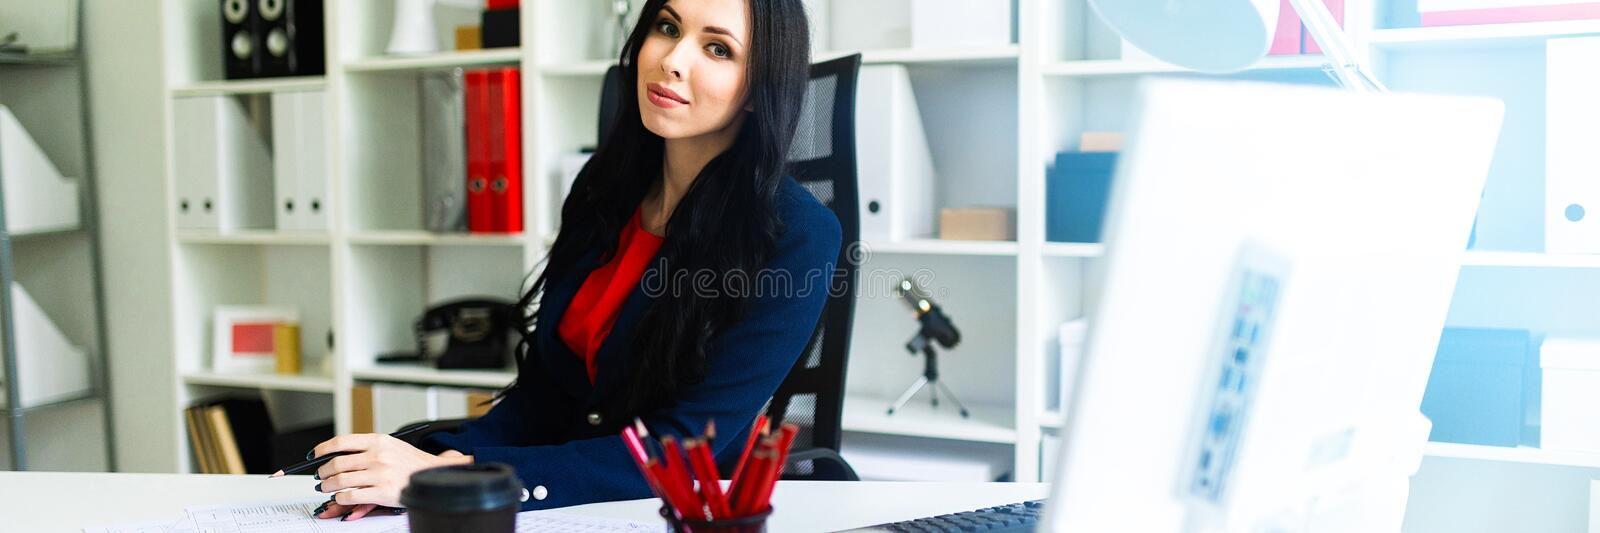 Beautiful young girl is looking through documents, sitting in the office at the table. royalty free stock photos